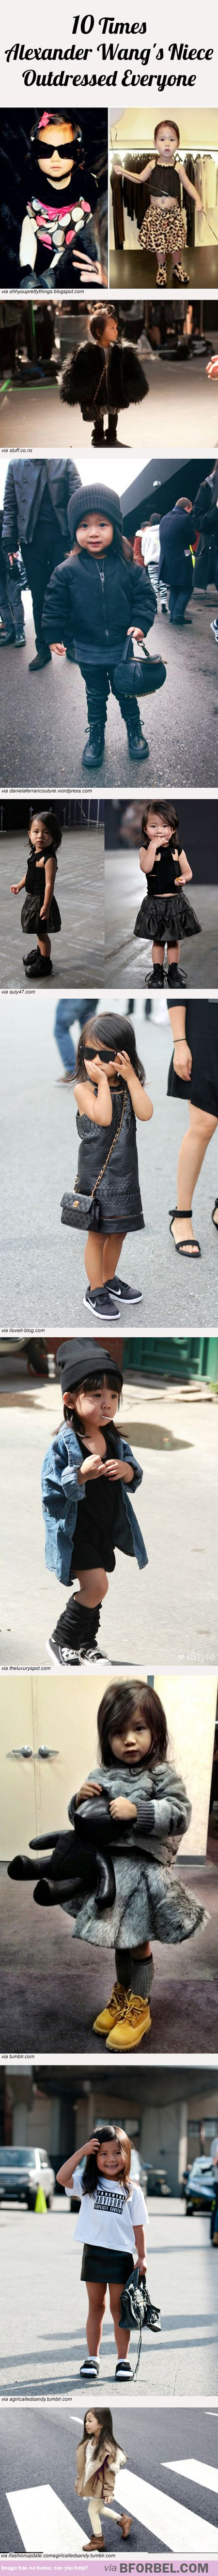 10 Times Alexander Wang's Niece Outdressed Everyone…